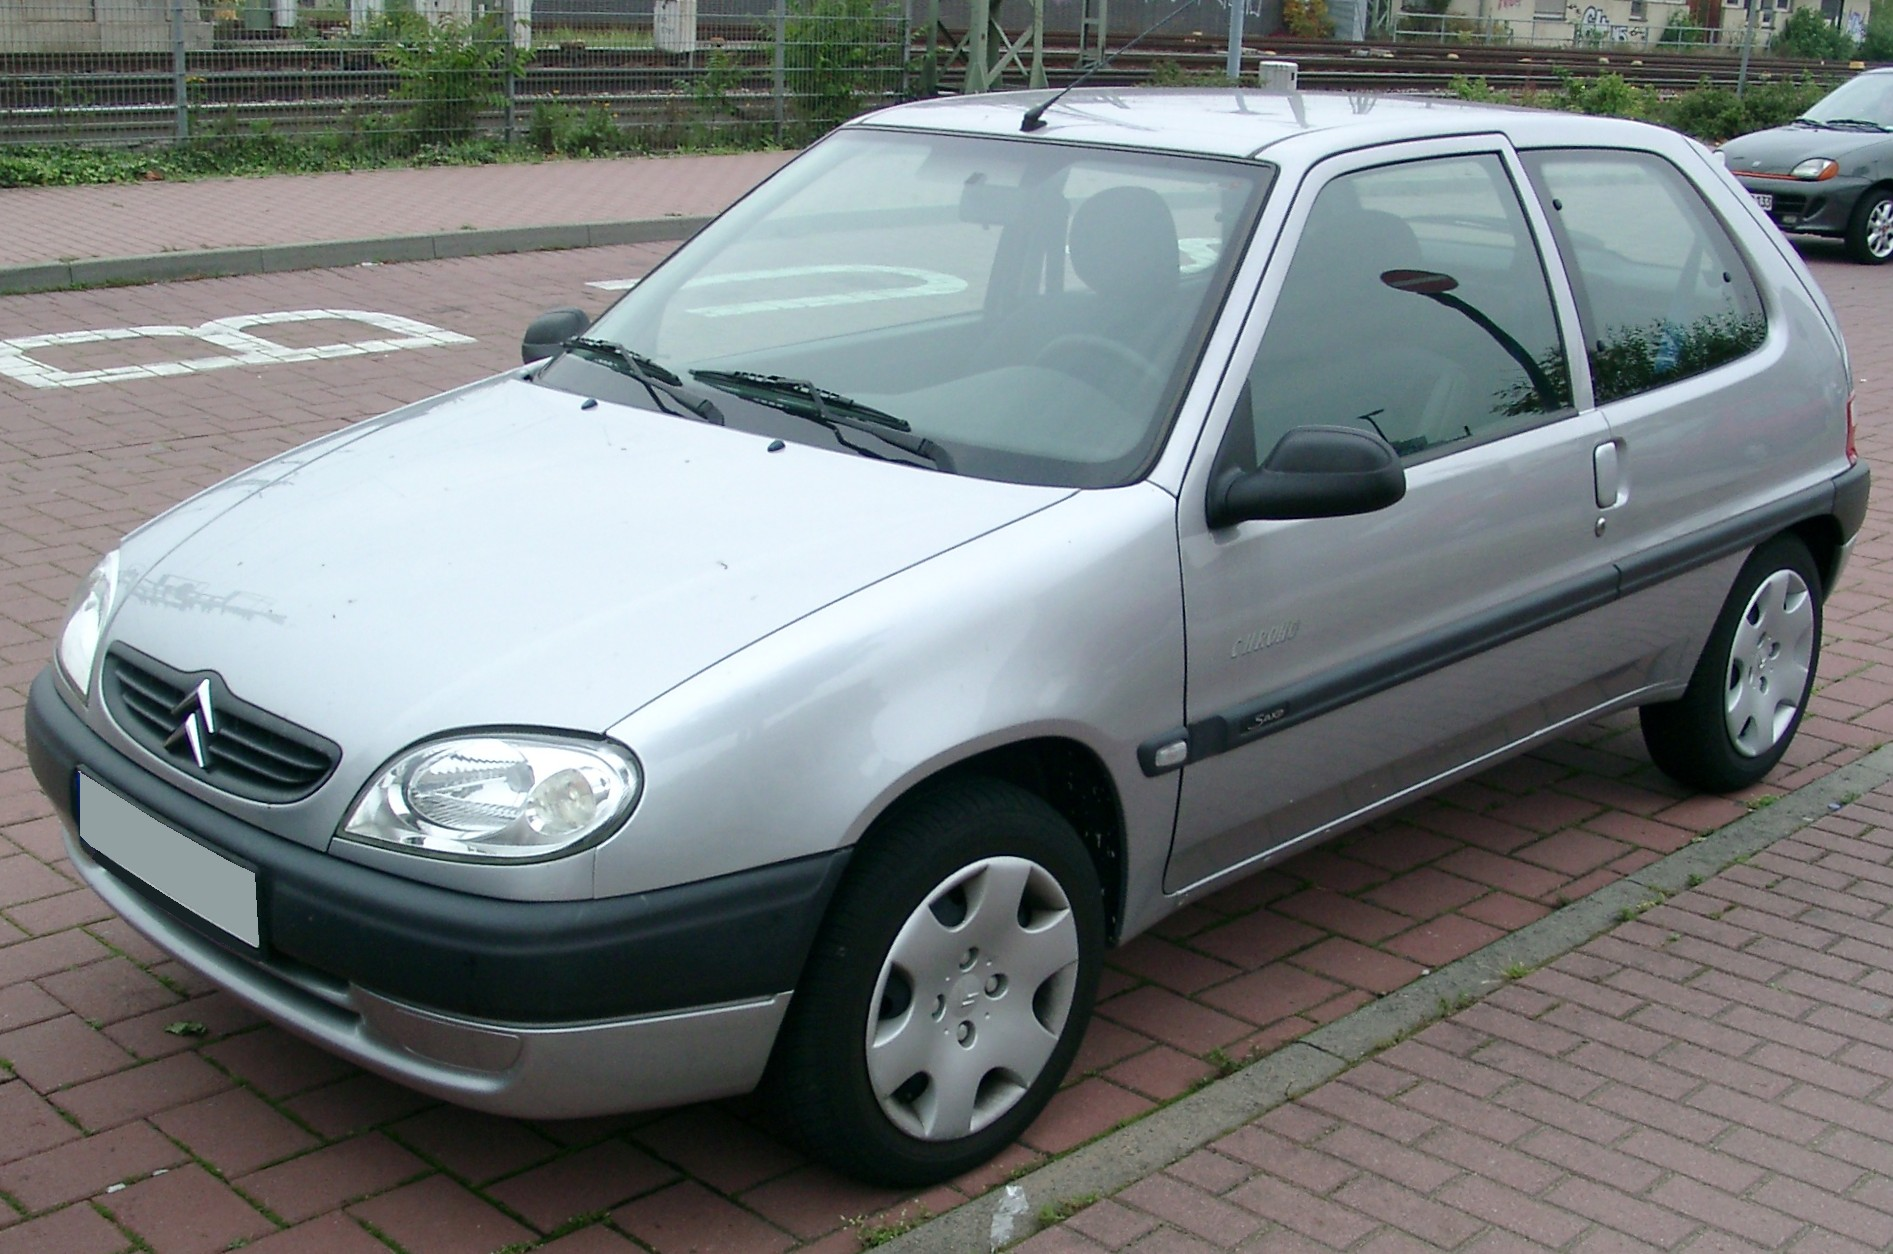 3934807Citroen_Saxo_front_20071002 Great Description About £54.99 with Awesome Pictures Cars Review